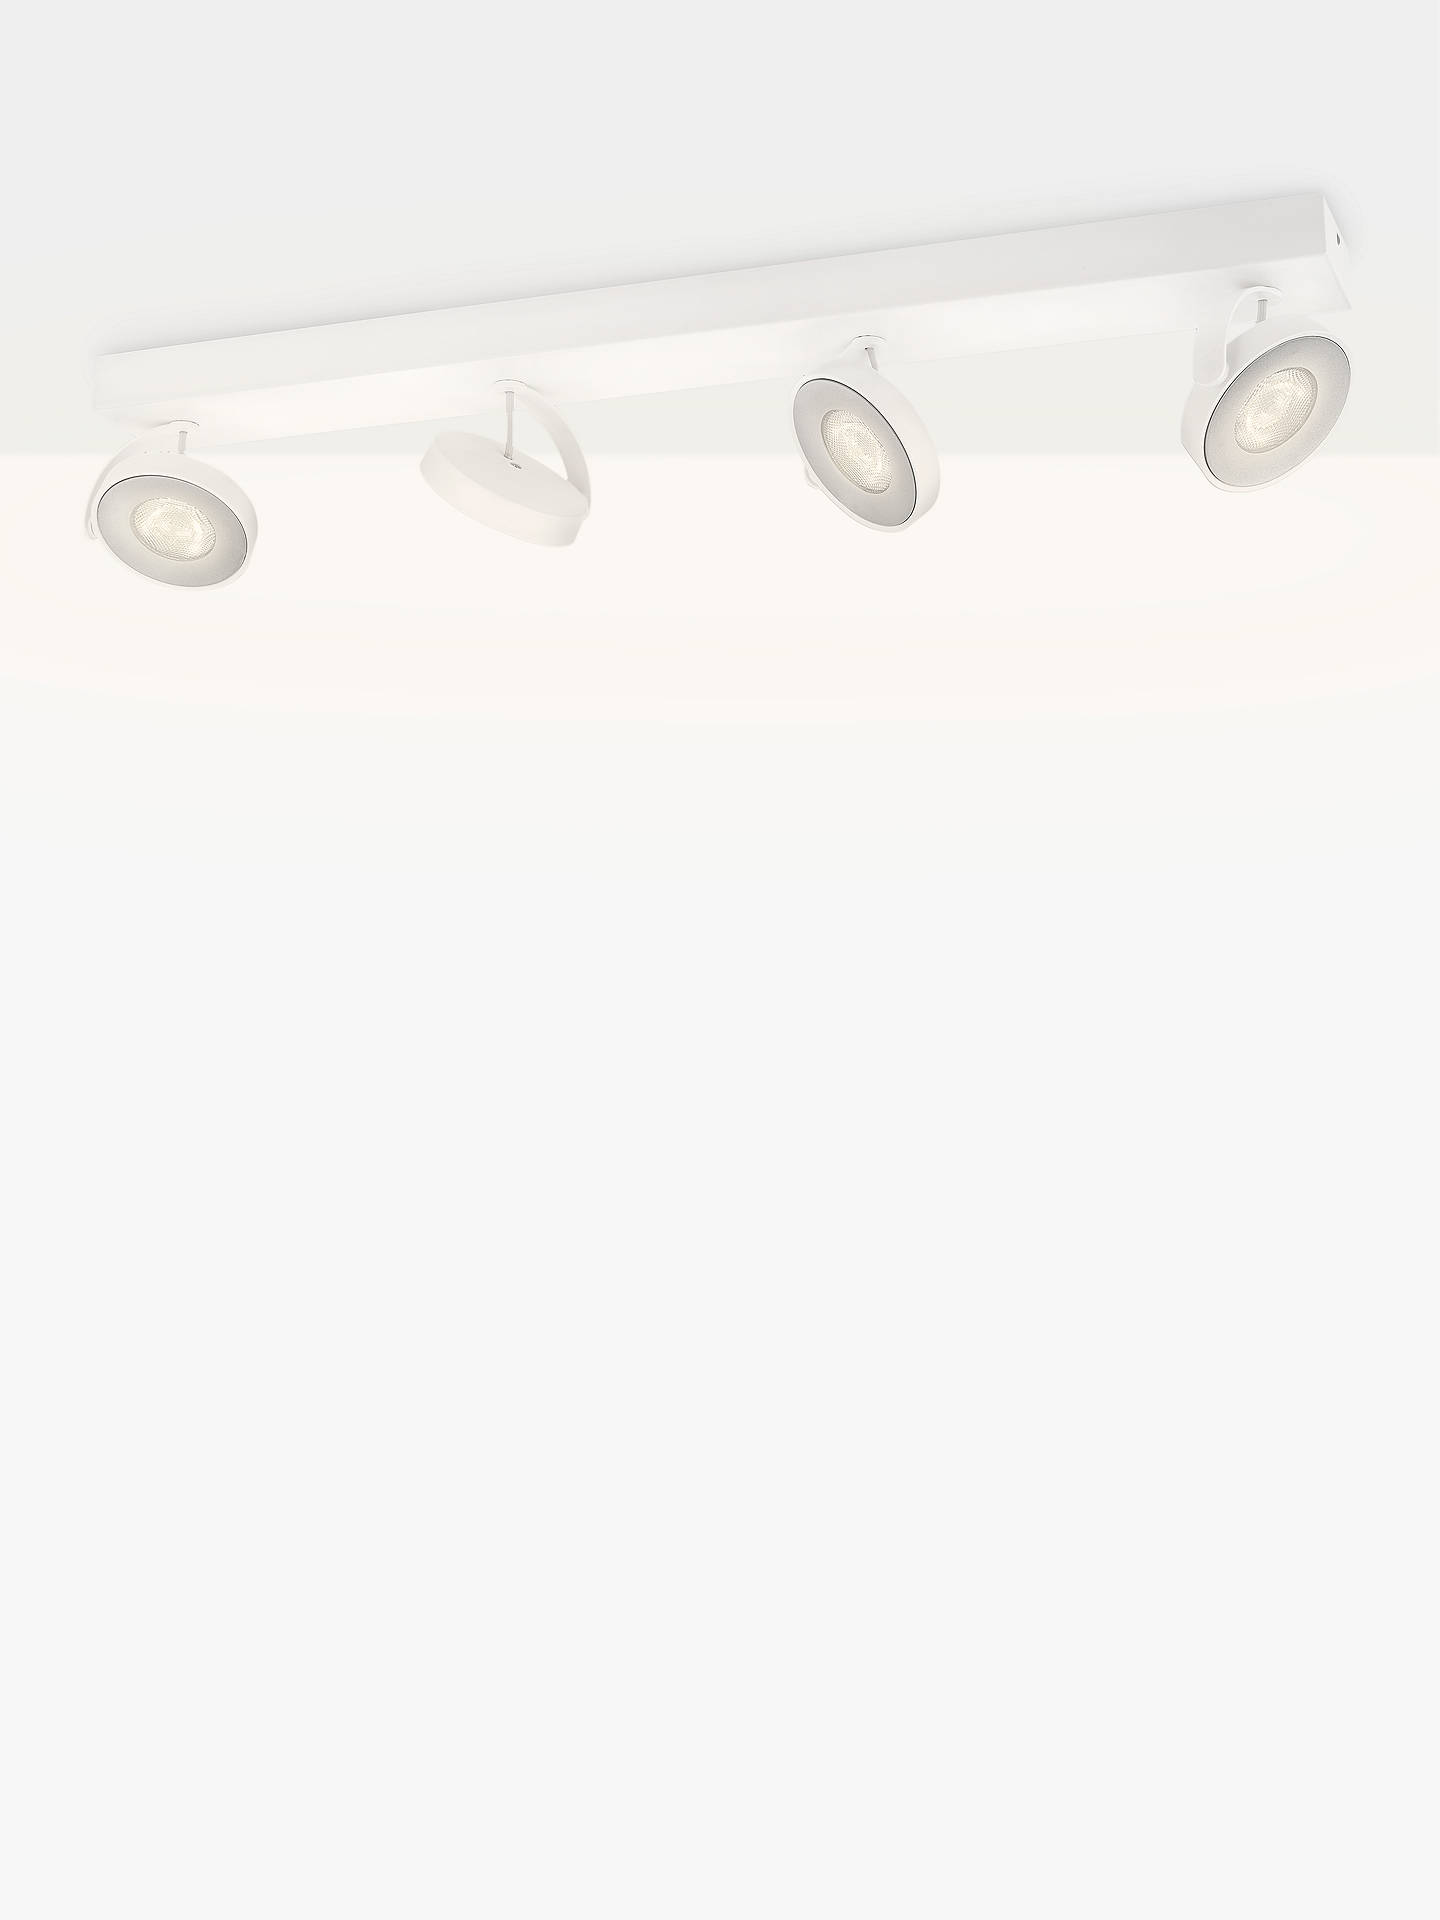 BuyPhilips Clockwork LED Warmglow Spotlight, 4 Light, White Online at johnlewis.com